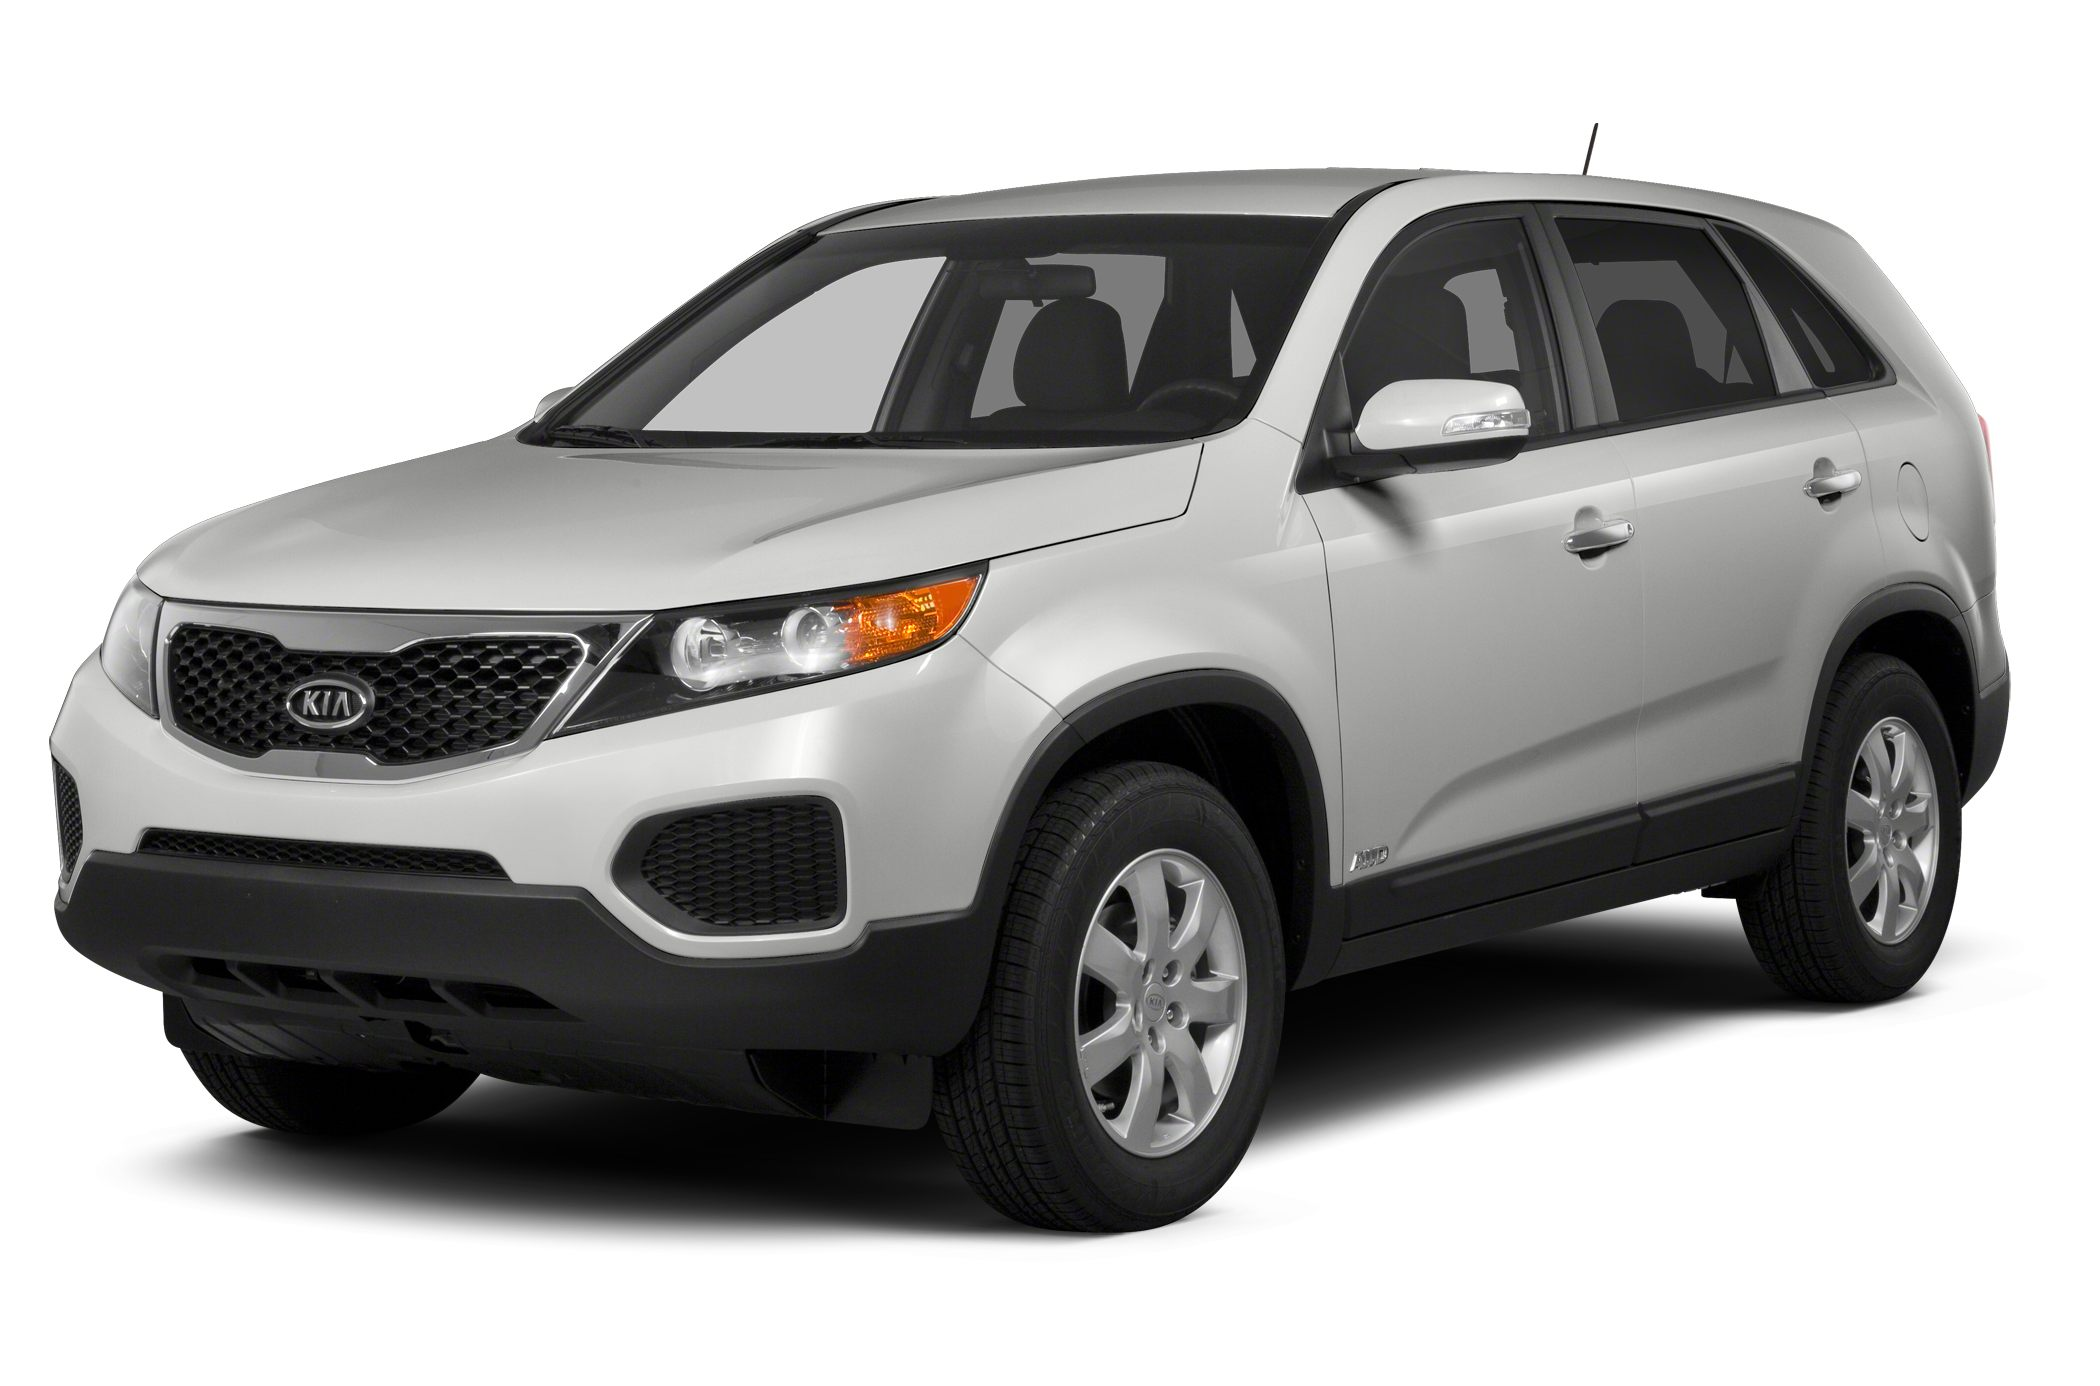 2011 Kia Sorento LX SUV for sale in Indianapolis for $14,599 with 72,482 miles.